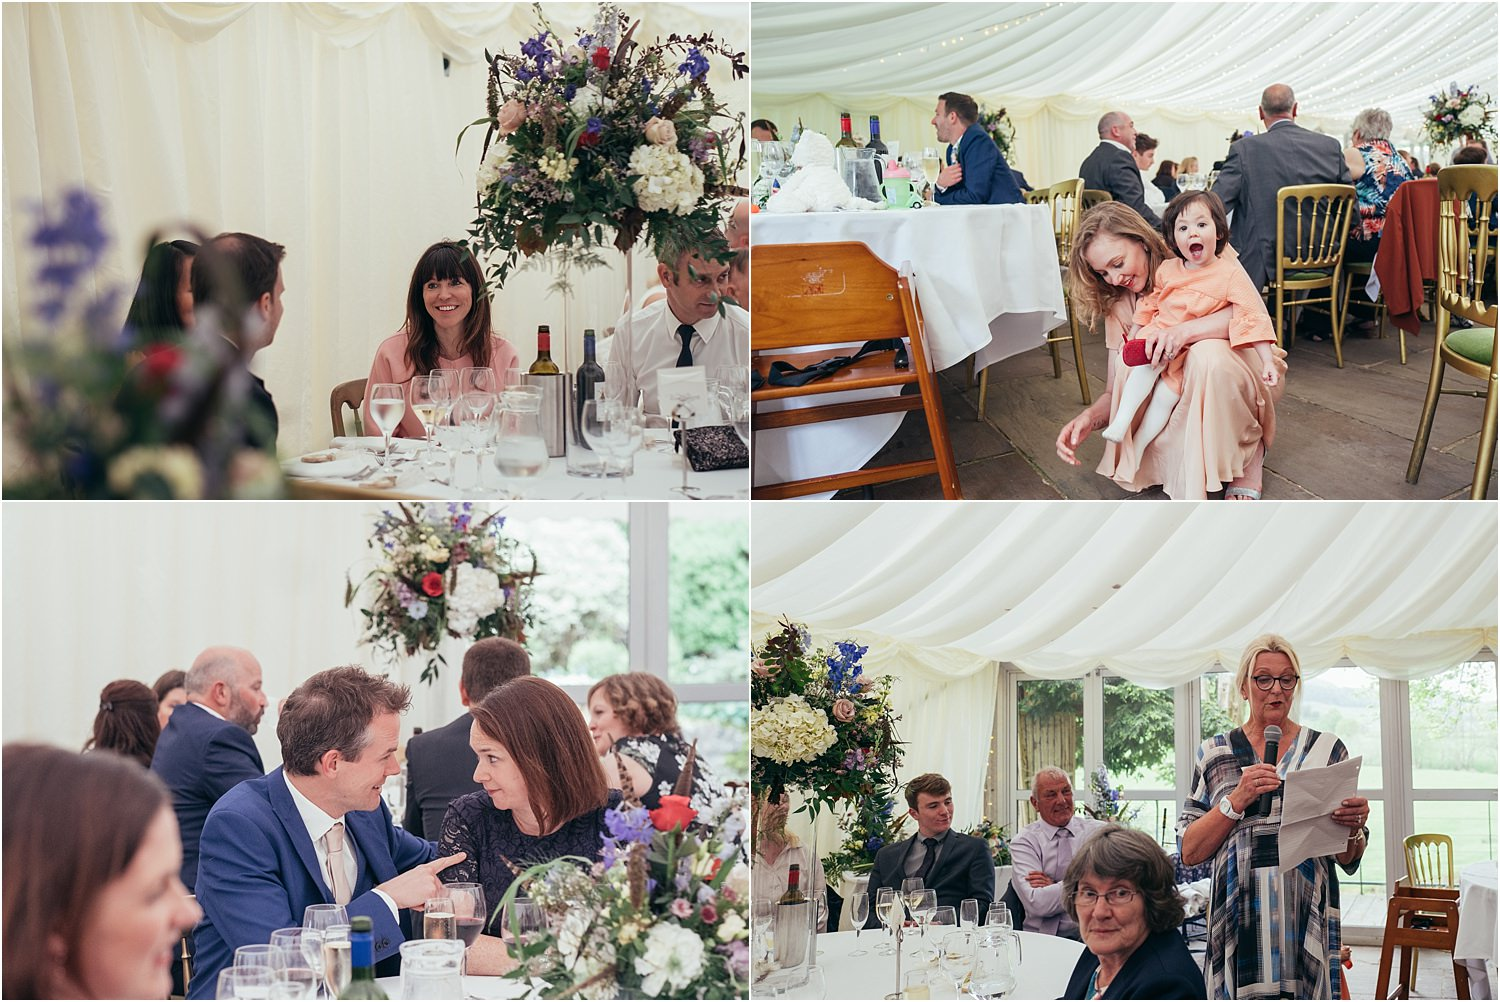 Wedding guests enjoying the reception at the Inn at Whitewell in Lancashire